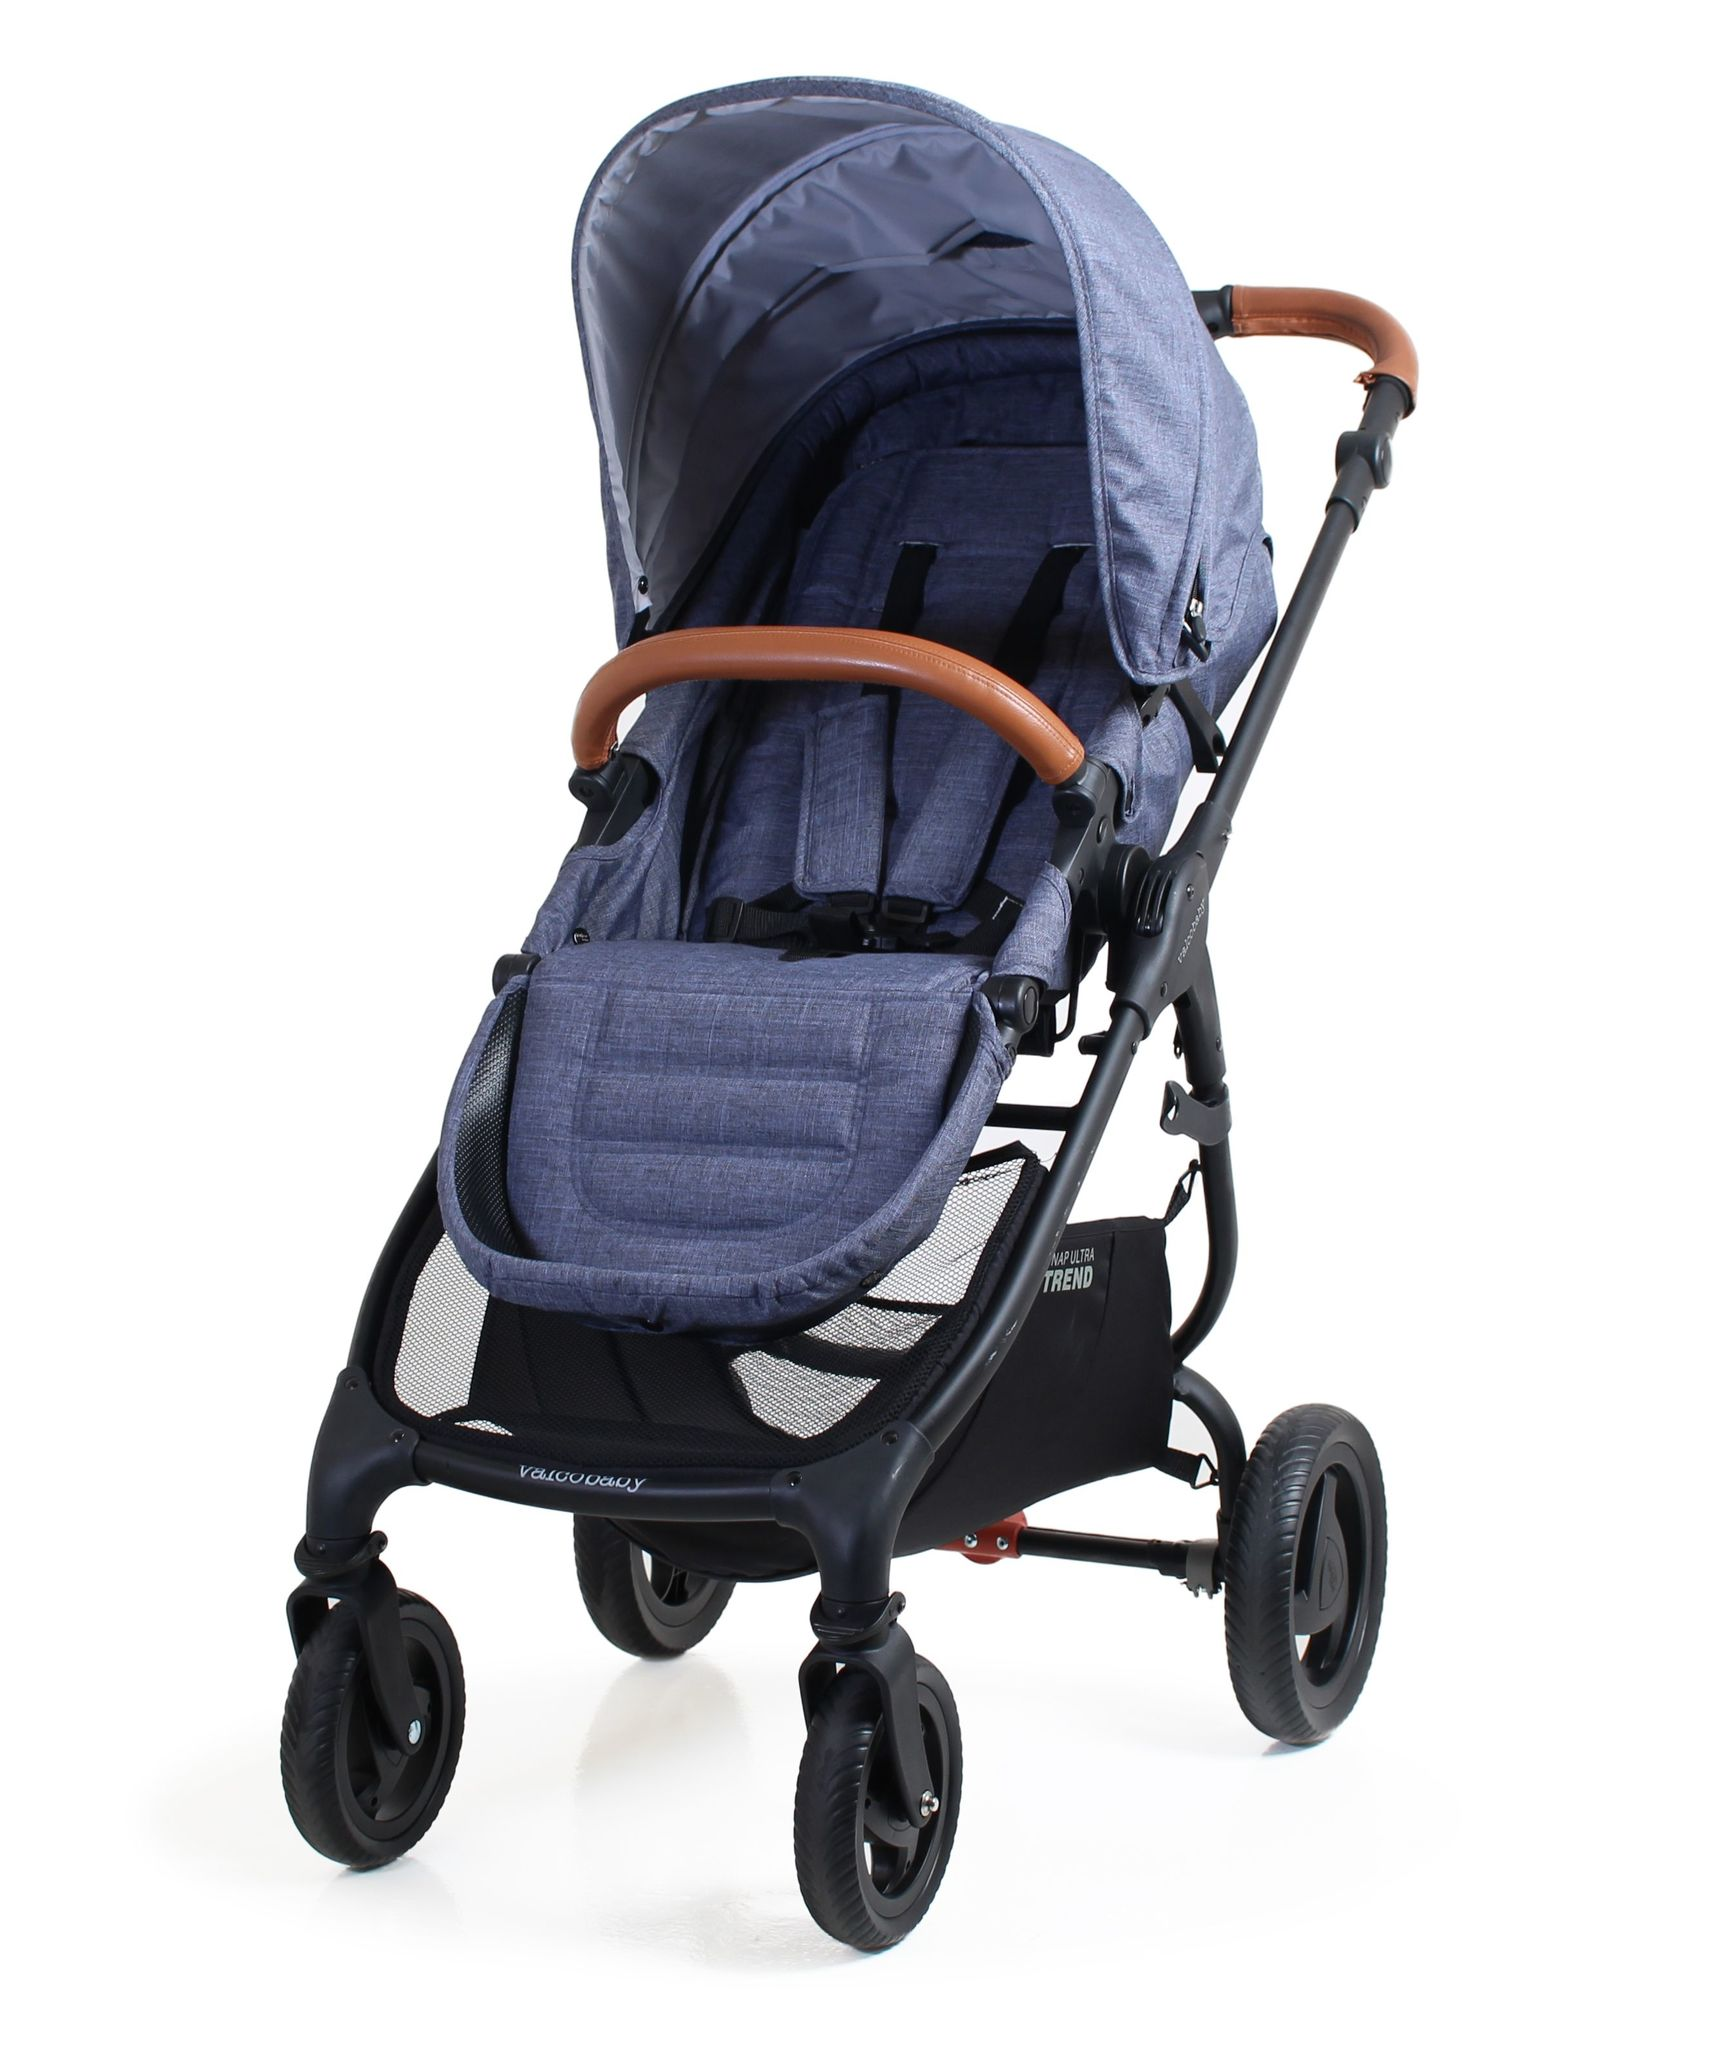 VALCO BABY SNAP 4 ULTRA TREND VALCO BABY SNAP 4 ULTRA TREND / 9899 _a07OaYM.jpeg